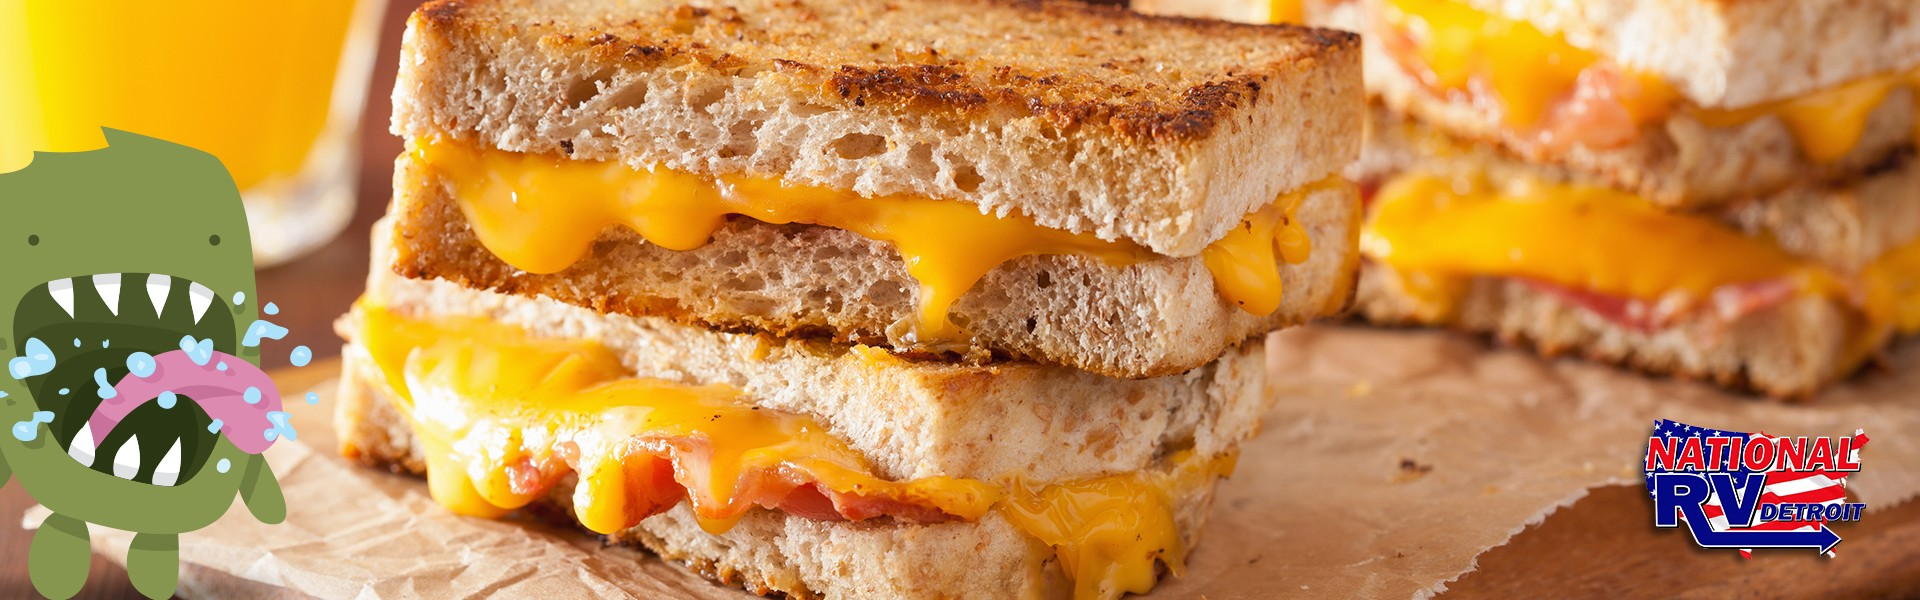 hungry monster and bacon grilled cheese sandwich